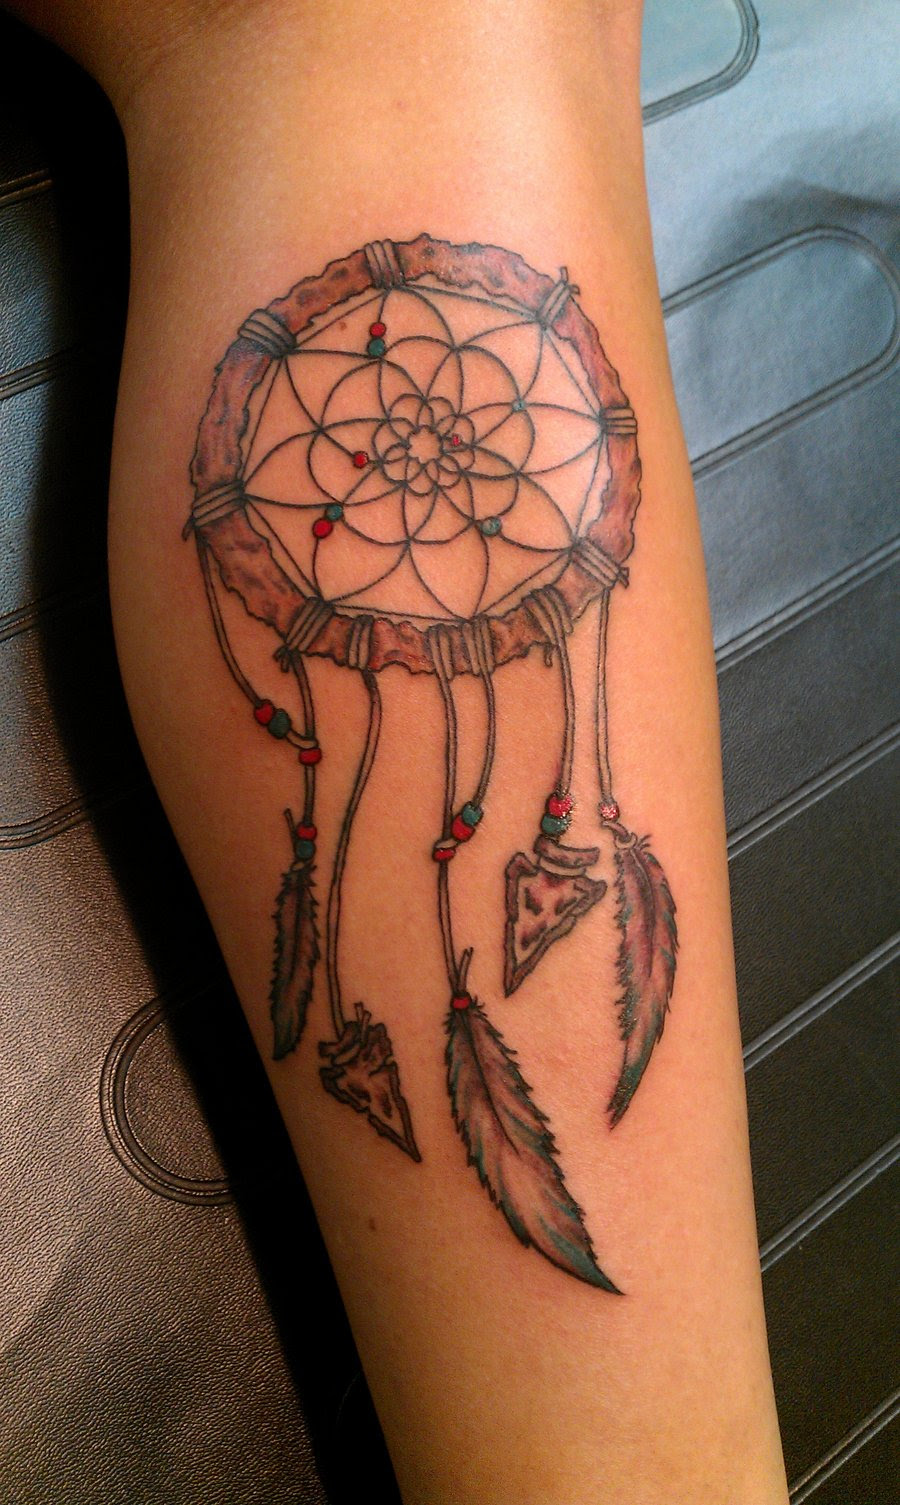 Dreamcatcher Tattoos Designs, Ideas and Meaning | Tattoos ...